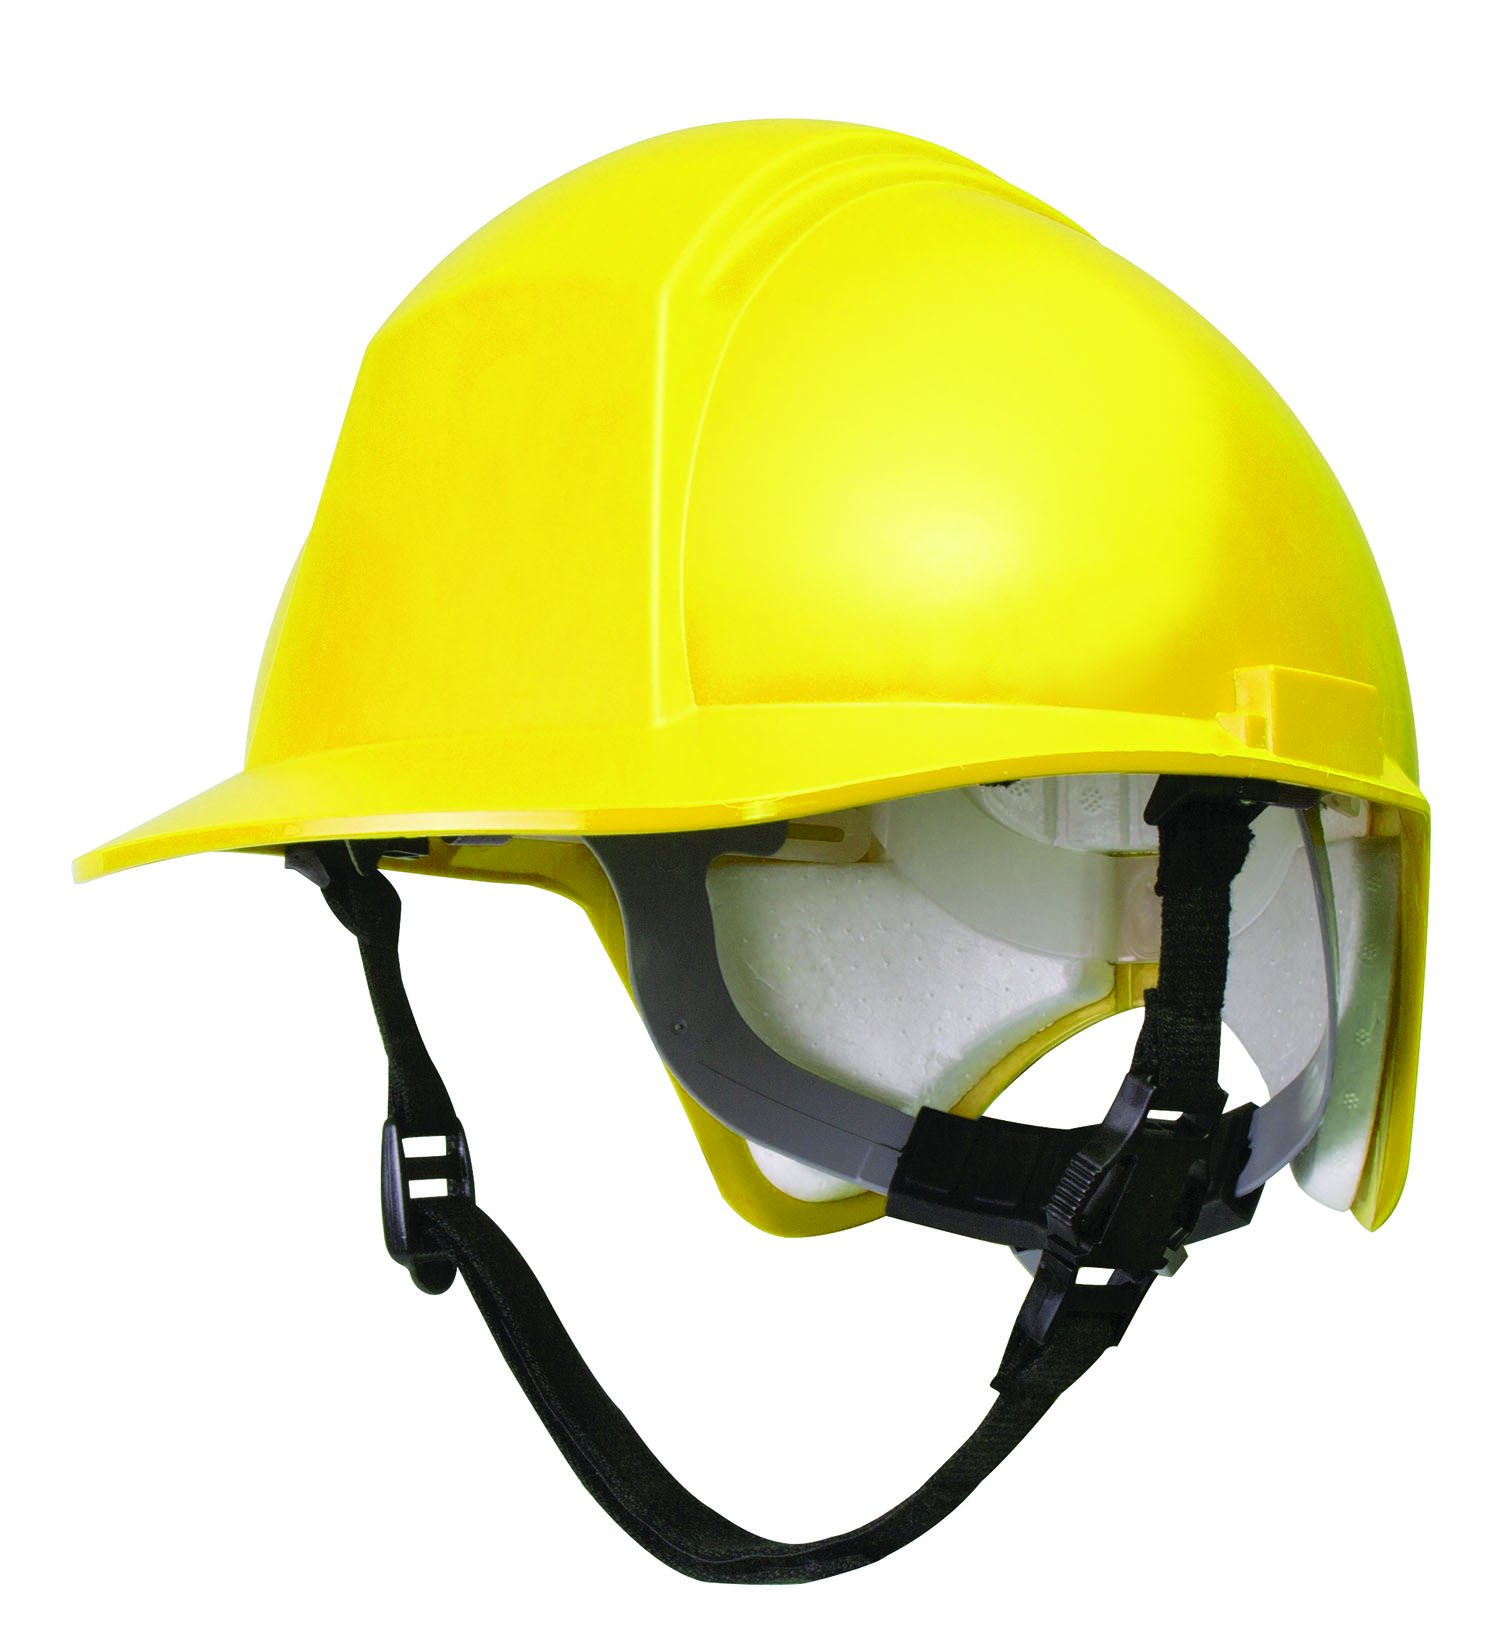 North by Honeywell CG8002 Force Hard Hat with Additional Back-Of-Head Protection, Ratchet Suspension and Chin Strap, Yellow by Honeywell